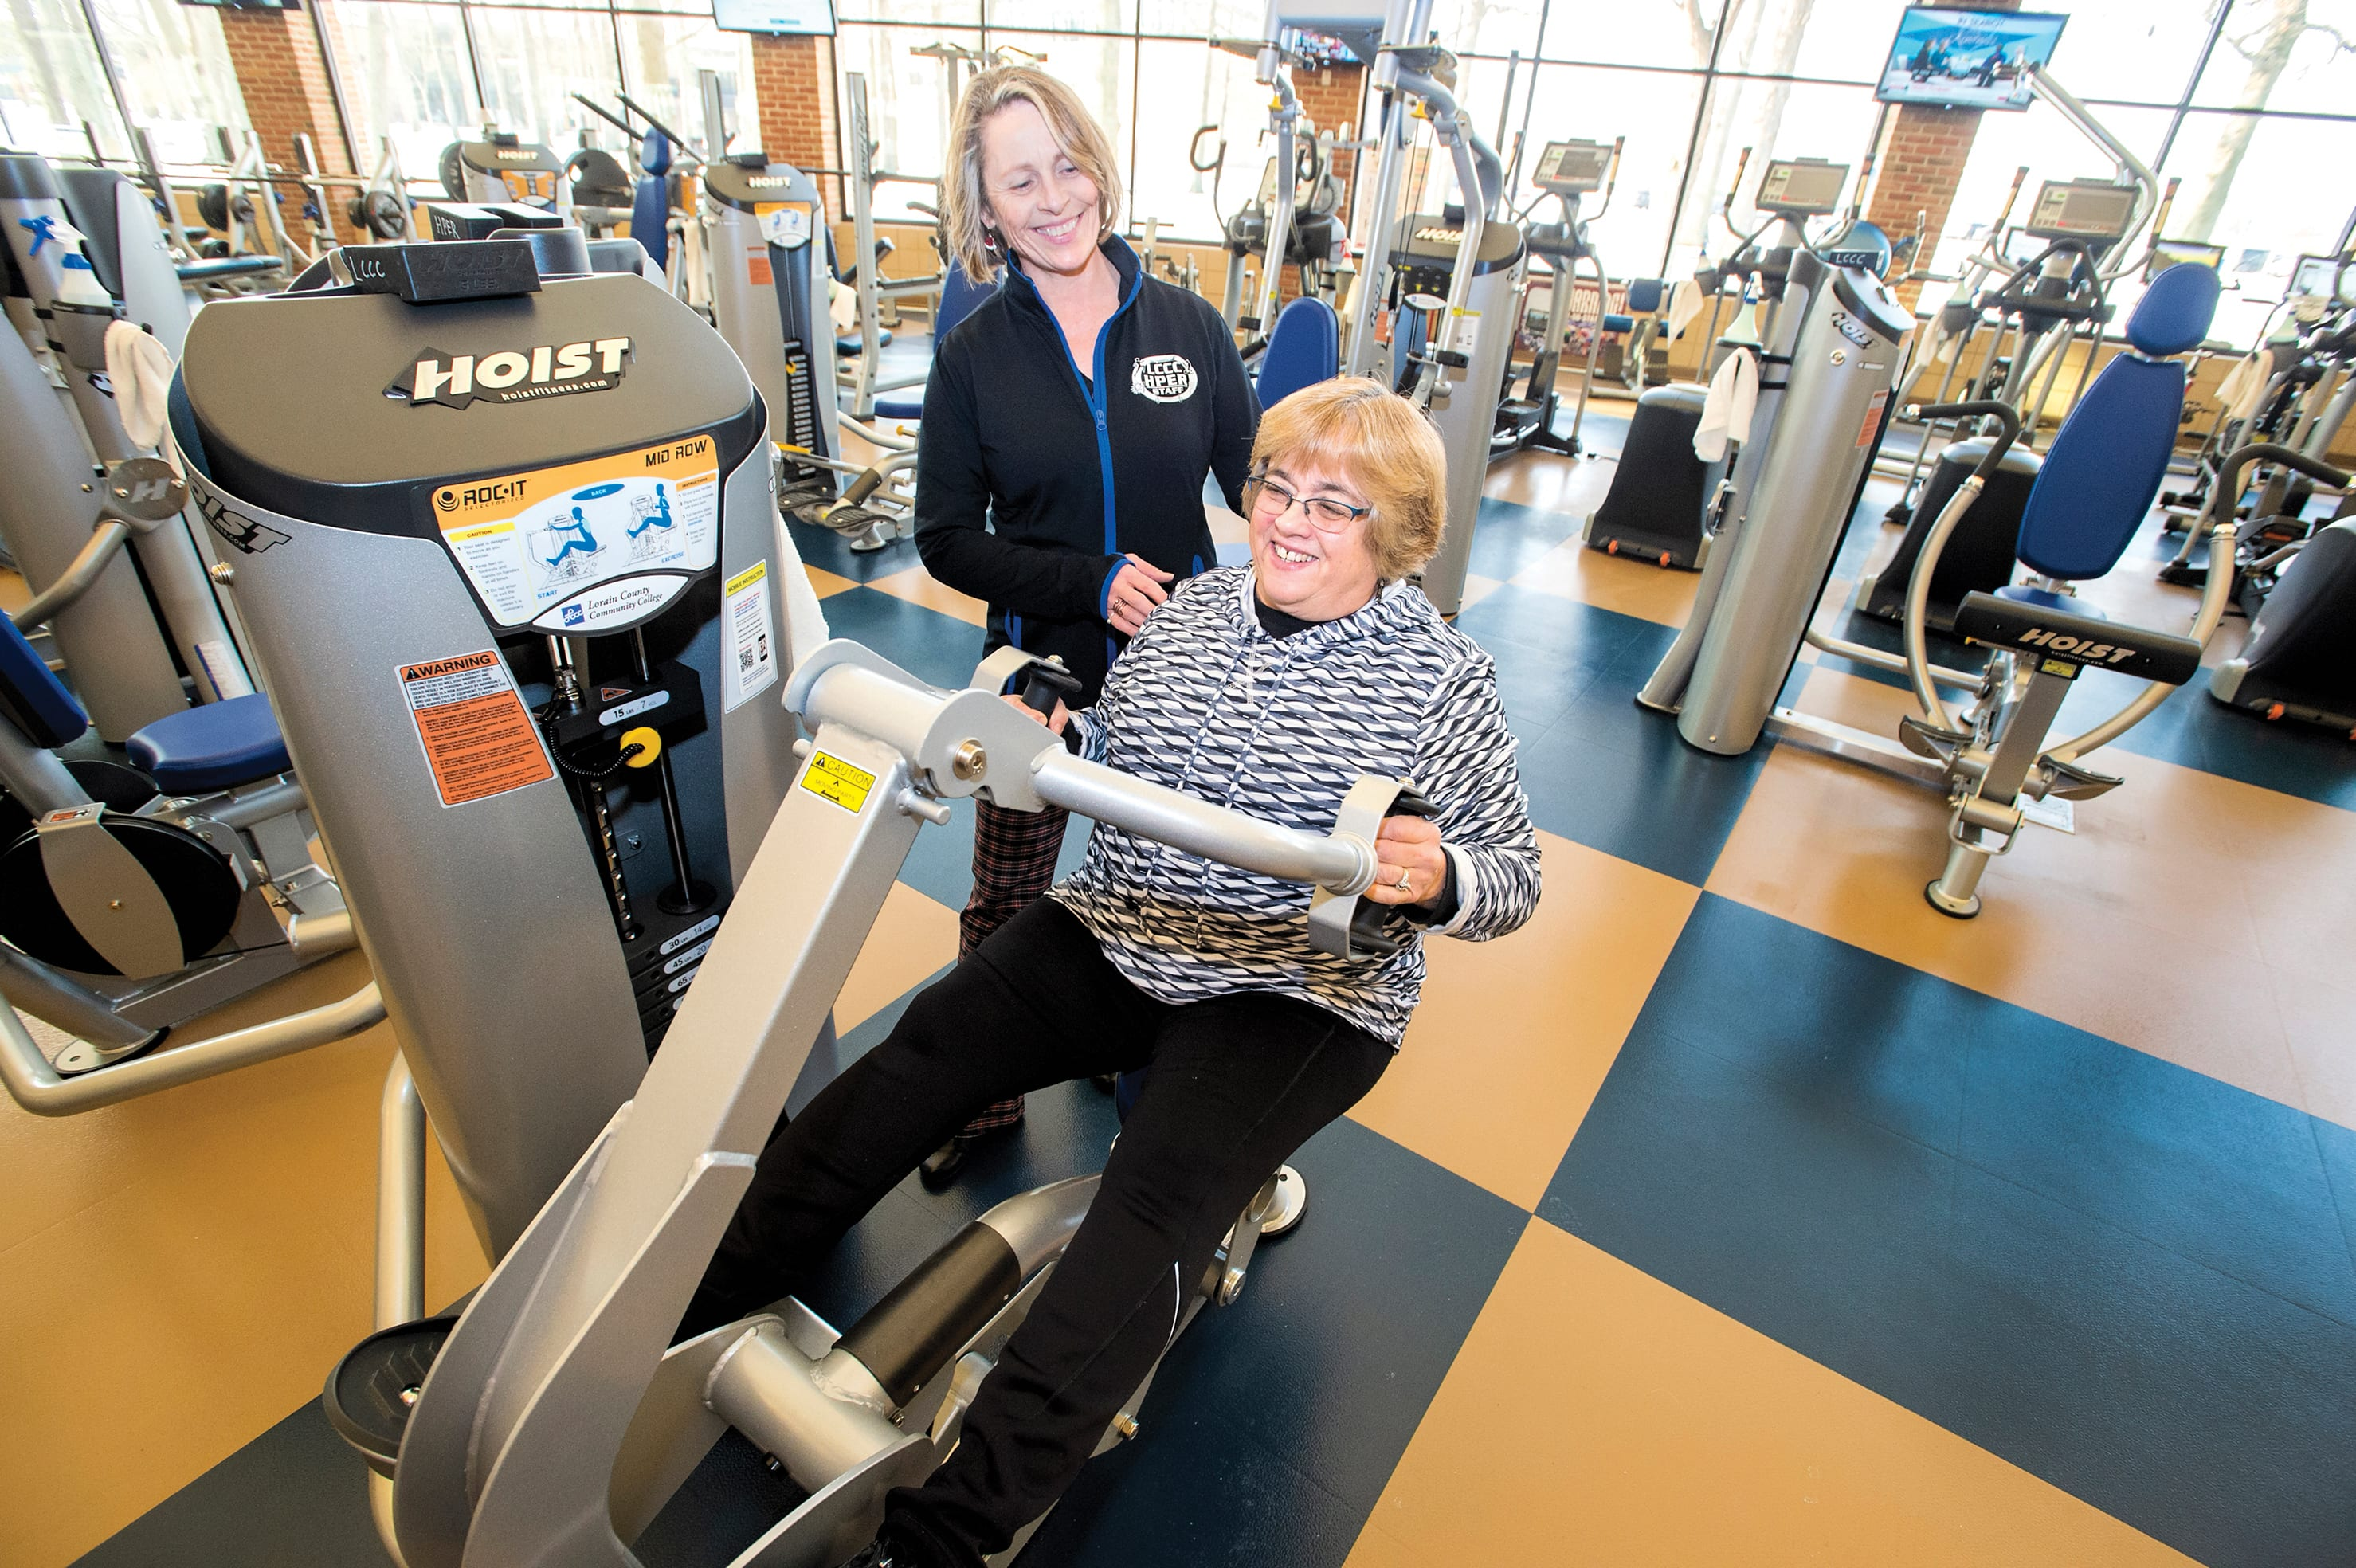 Phaidra Cox in the fitness center with trainer Kathryn Orantek